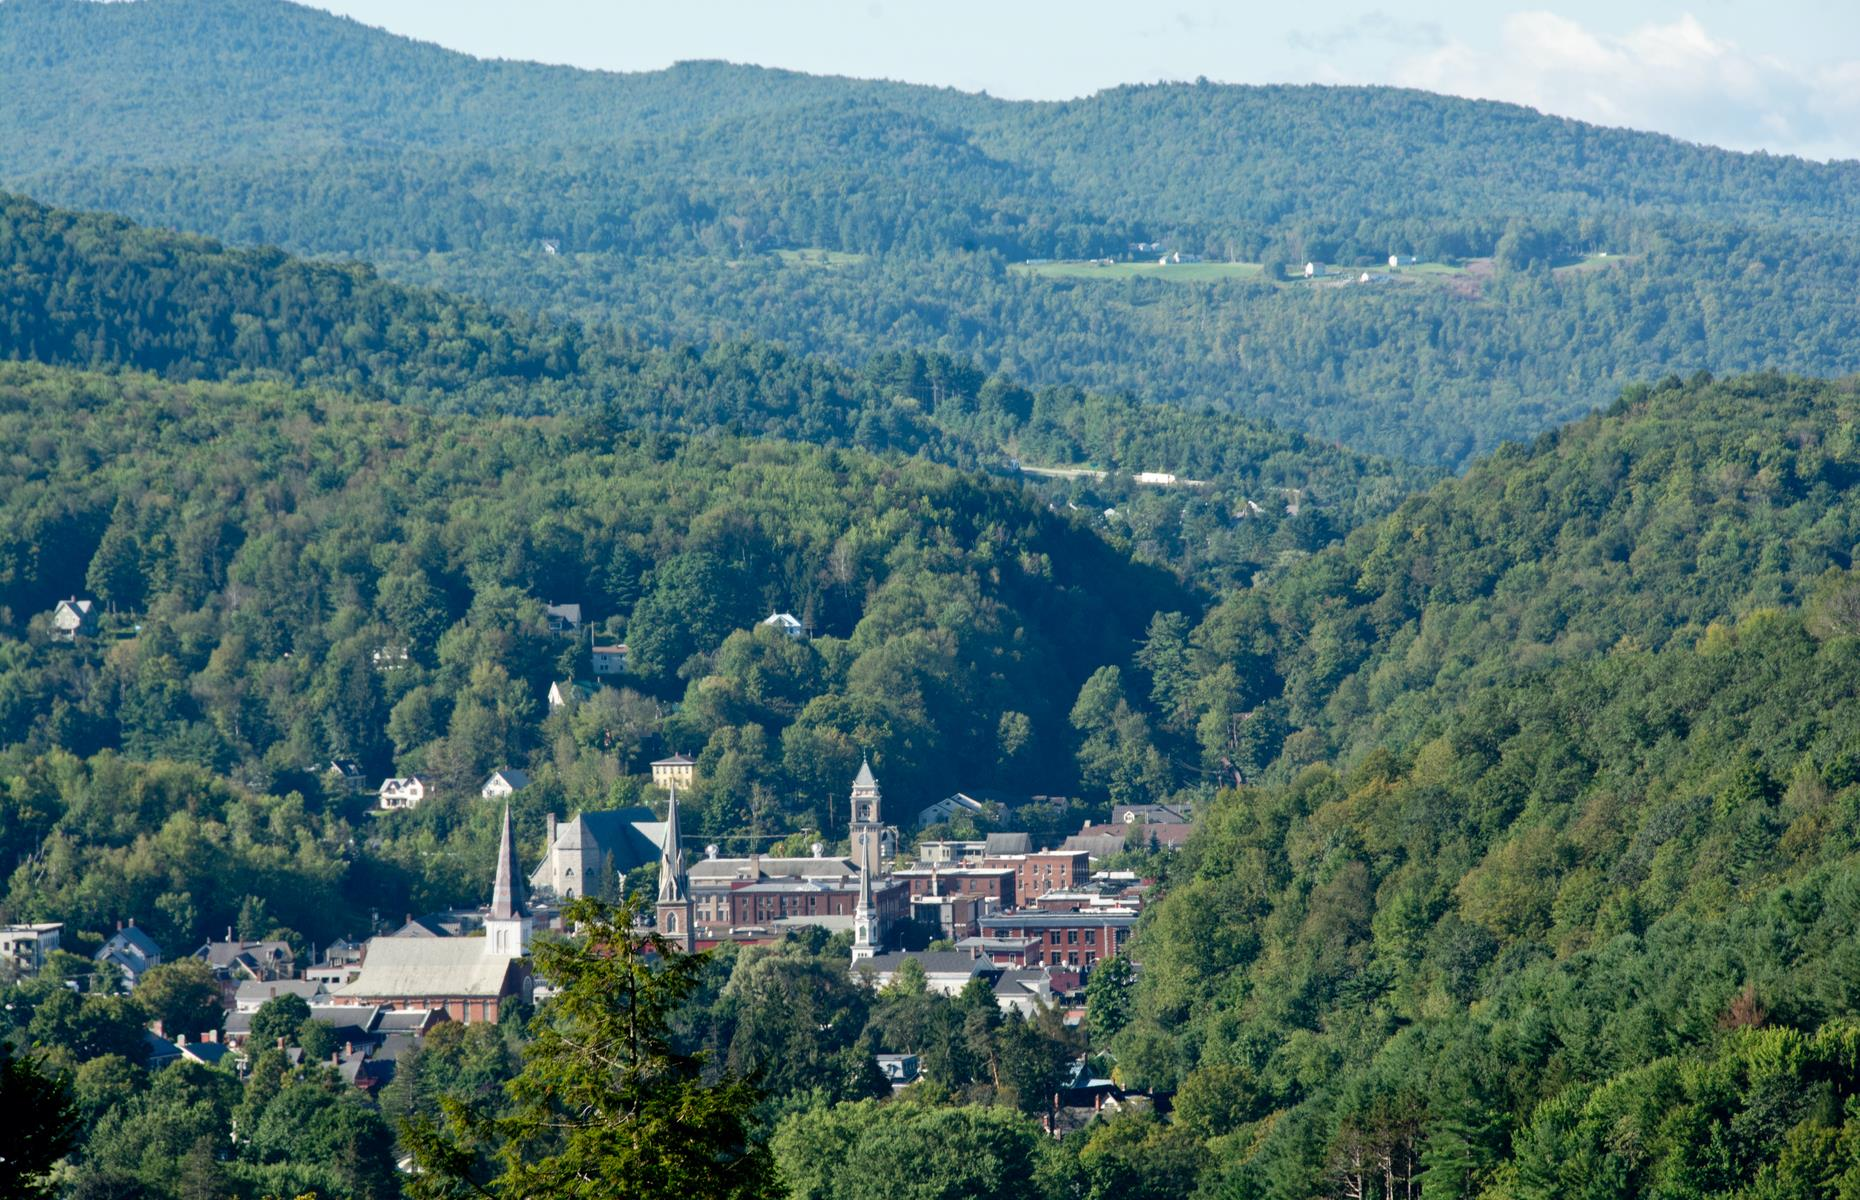 Slide 6 of 41: Proudly known as the tiniest of all state capitals, Montpelier is mostly associated with maple syrup and mountains but it's got plenty of history too. Snug in the foothills of the Green Mountains, its downtown area is the largest National Register of Historic Places District in Vermont. Today the 19th-century buildings are filled with quaint stores including vintage record and independent bookshops, and historic inns. Its skyline is dotted with church steeples and dominated by its grand gold-domed State House.